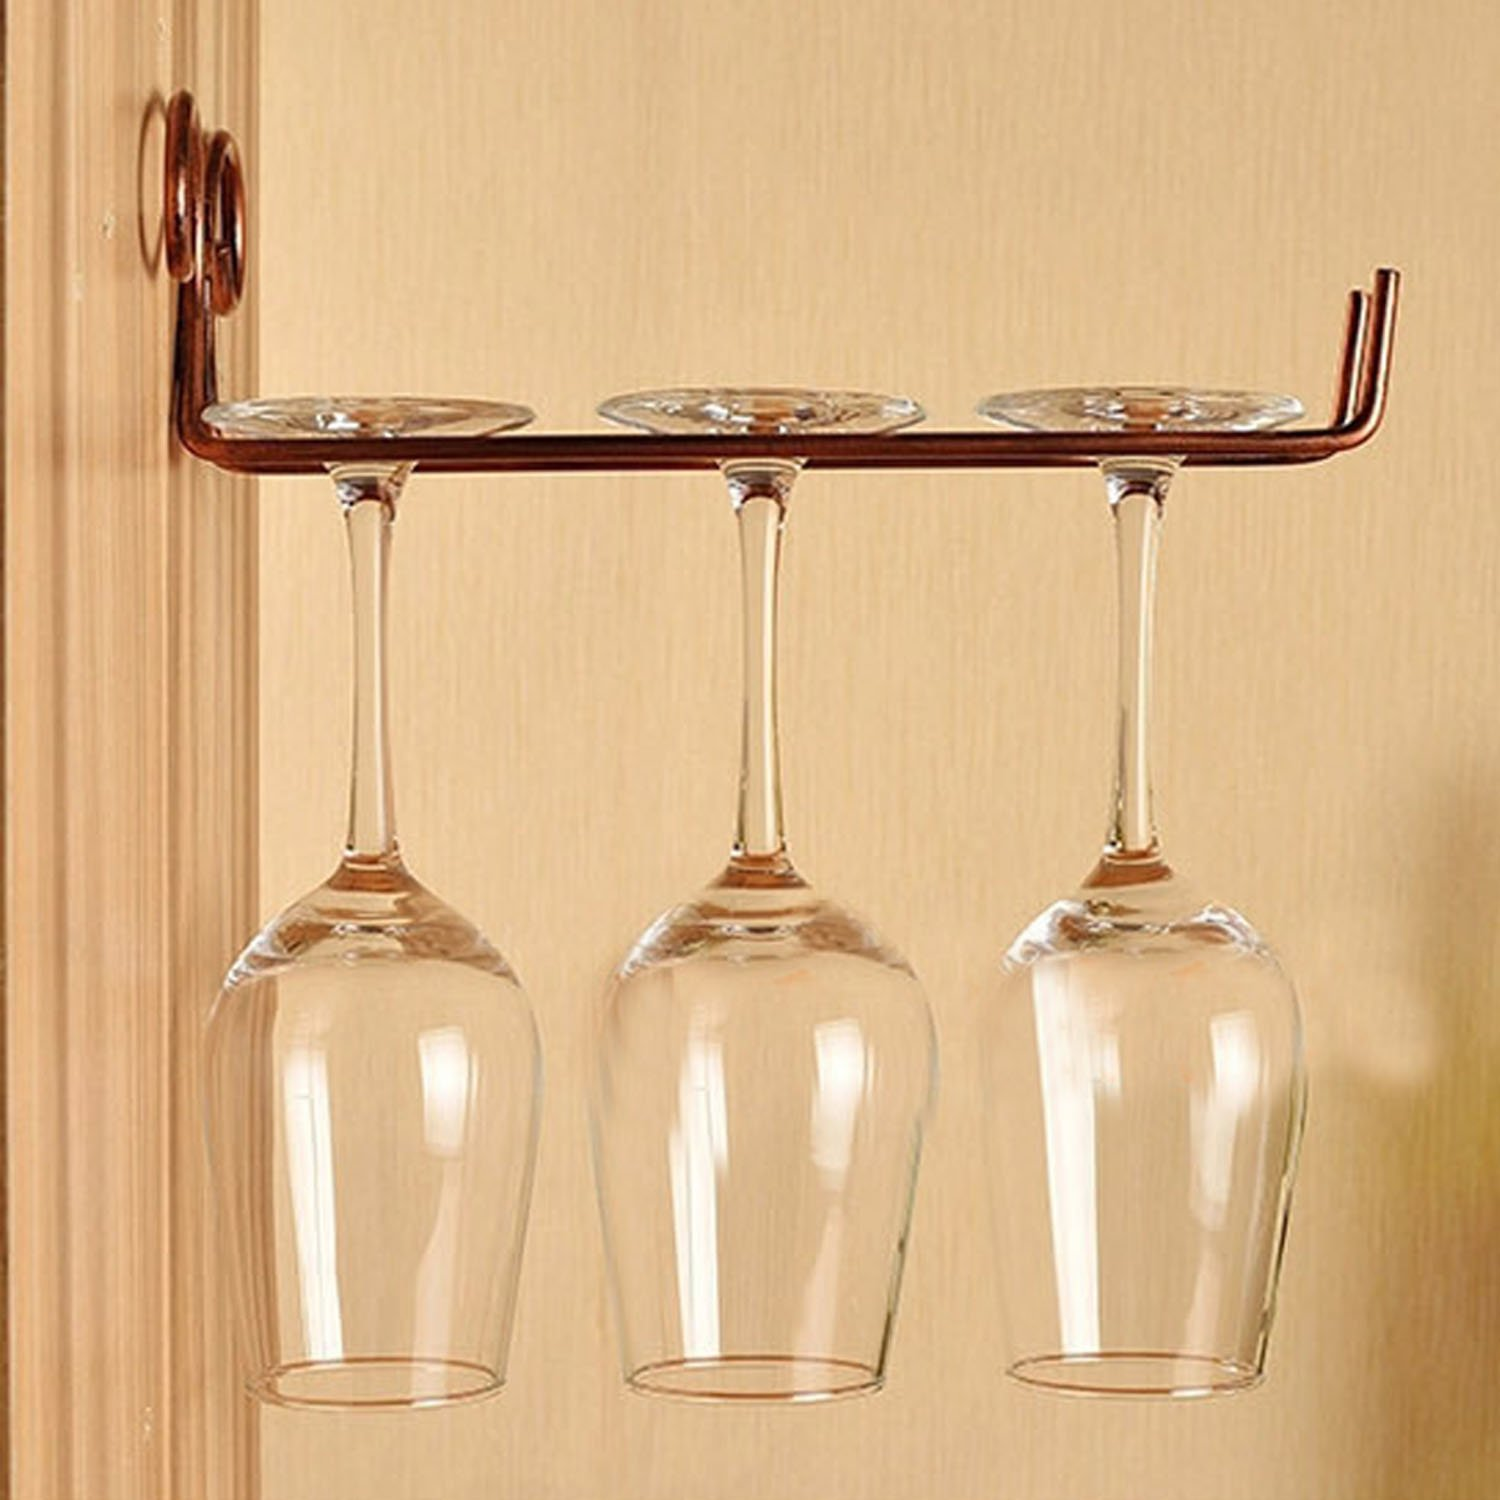 Kangkang@ Classical Single Row Wall Wine Goblet Glass Shelf Stemware Hanging Rack Holder for Bar Dining Home Decoration by Kangkang